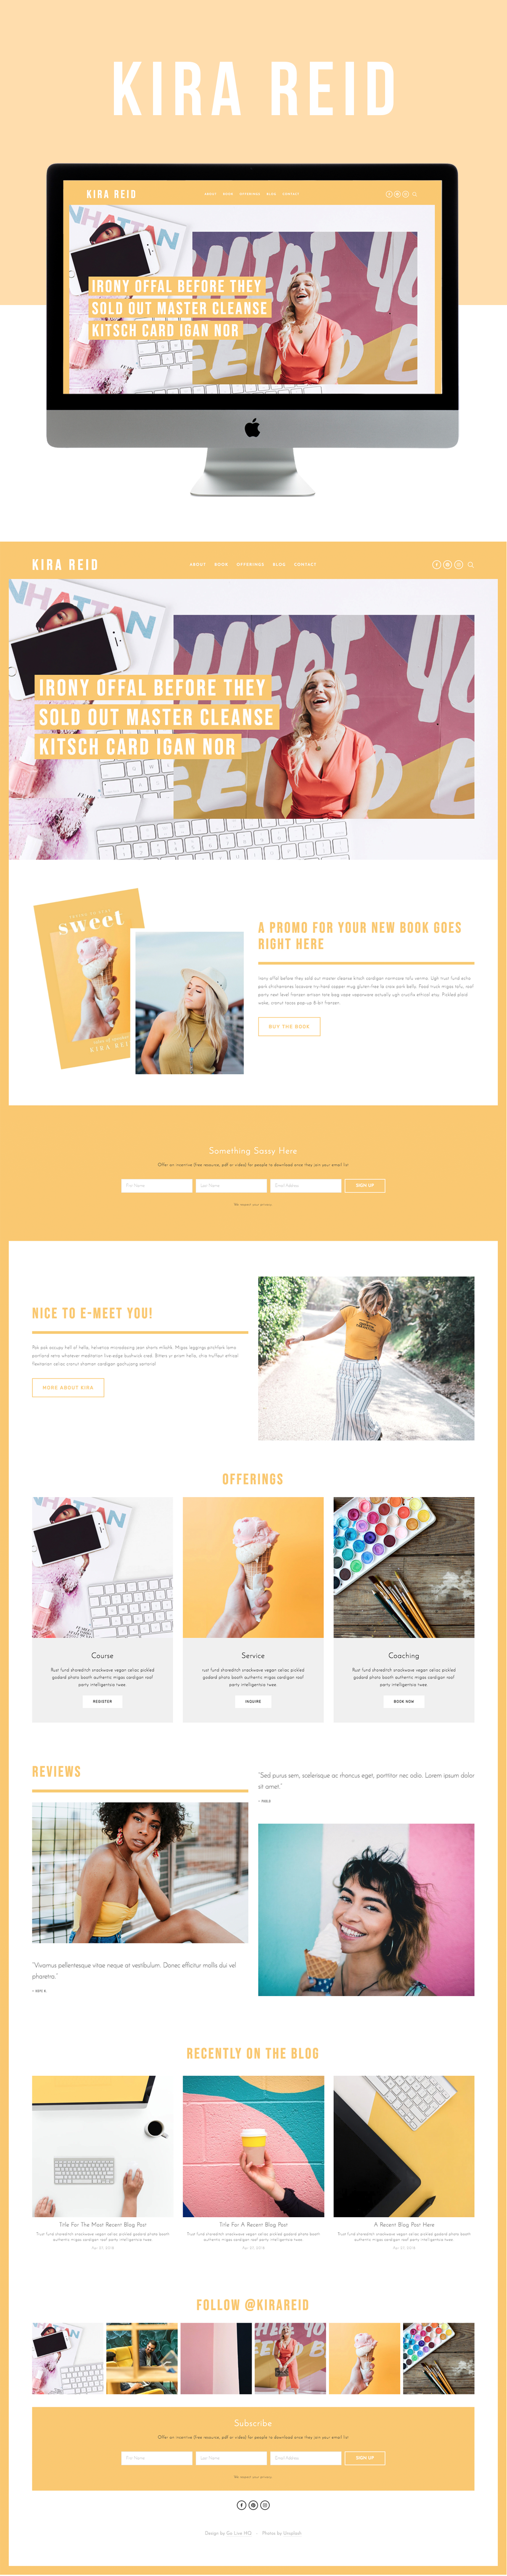 Bright & Fun Website Design for Businesses, Speakers, and Authors | Design by Go Live HQ